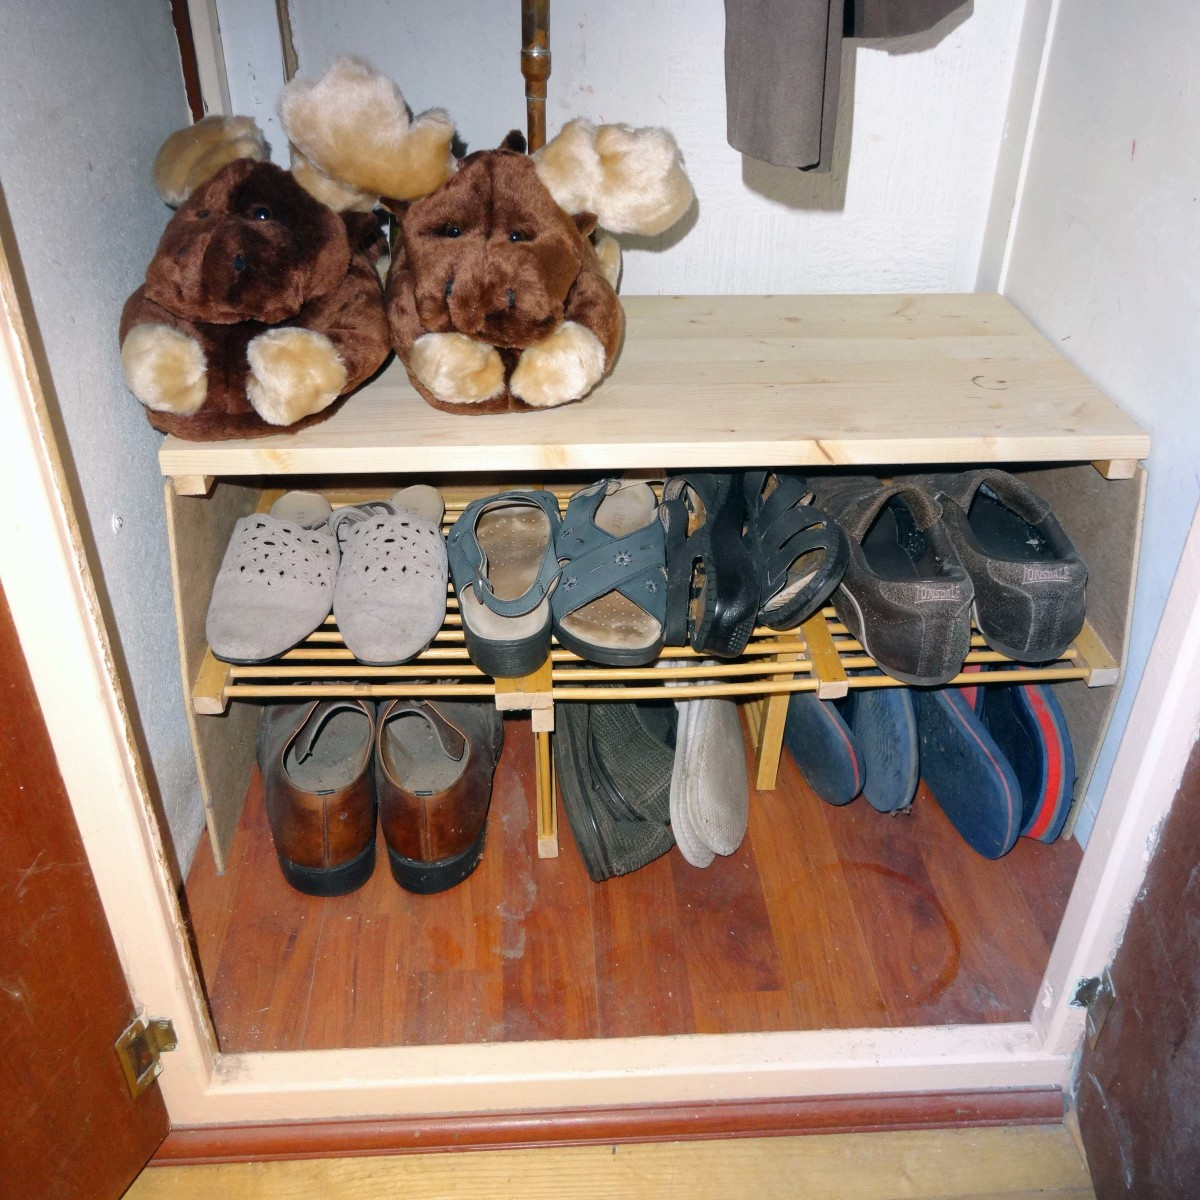 Making a Shoe Rack From an Old Dish Rack